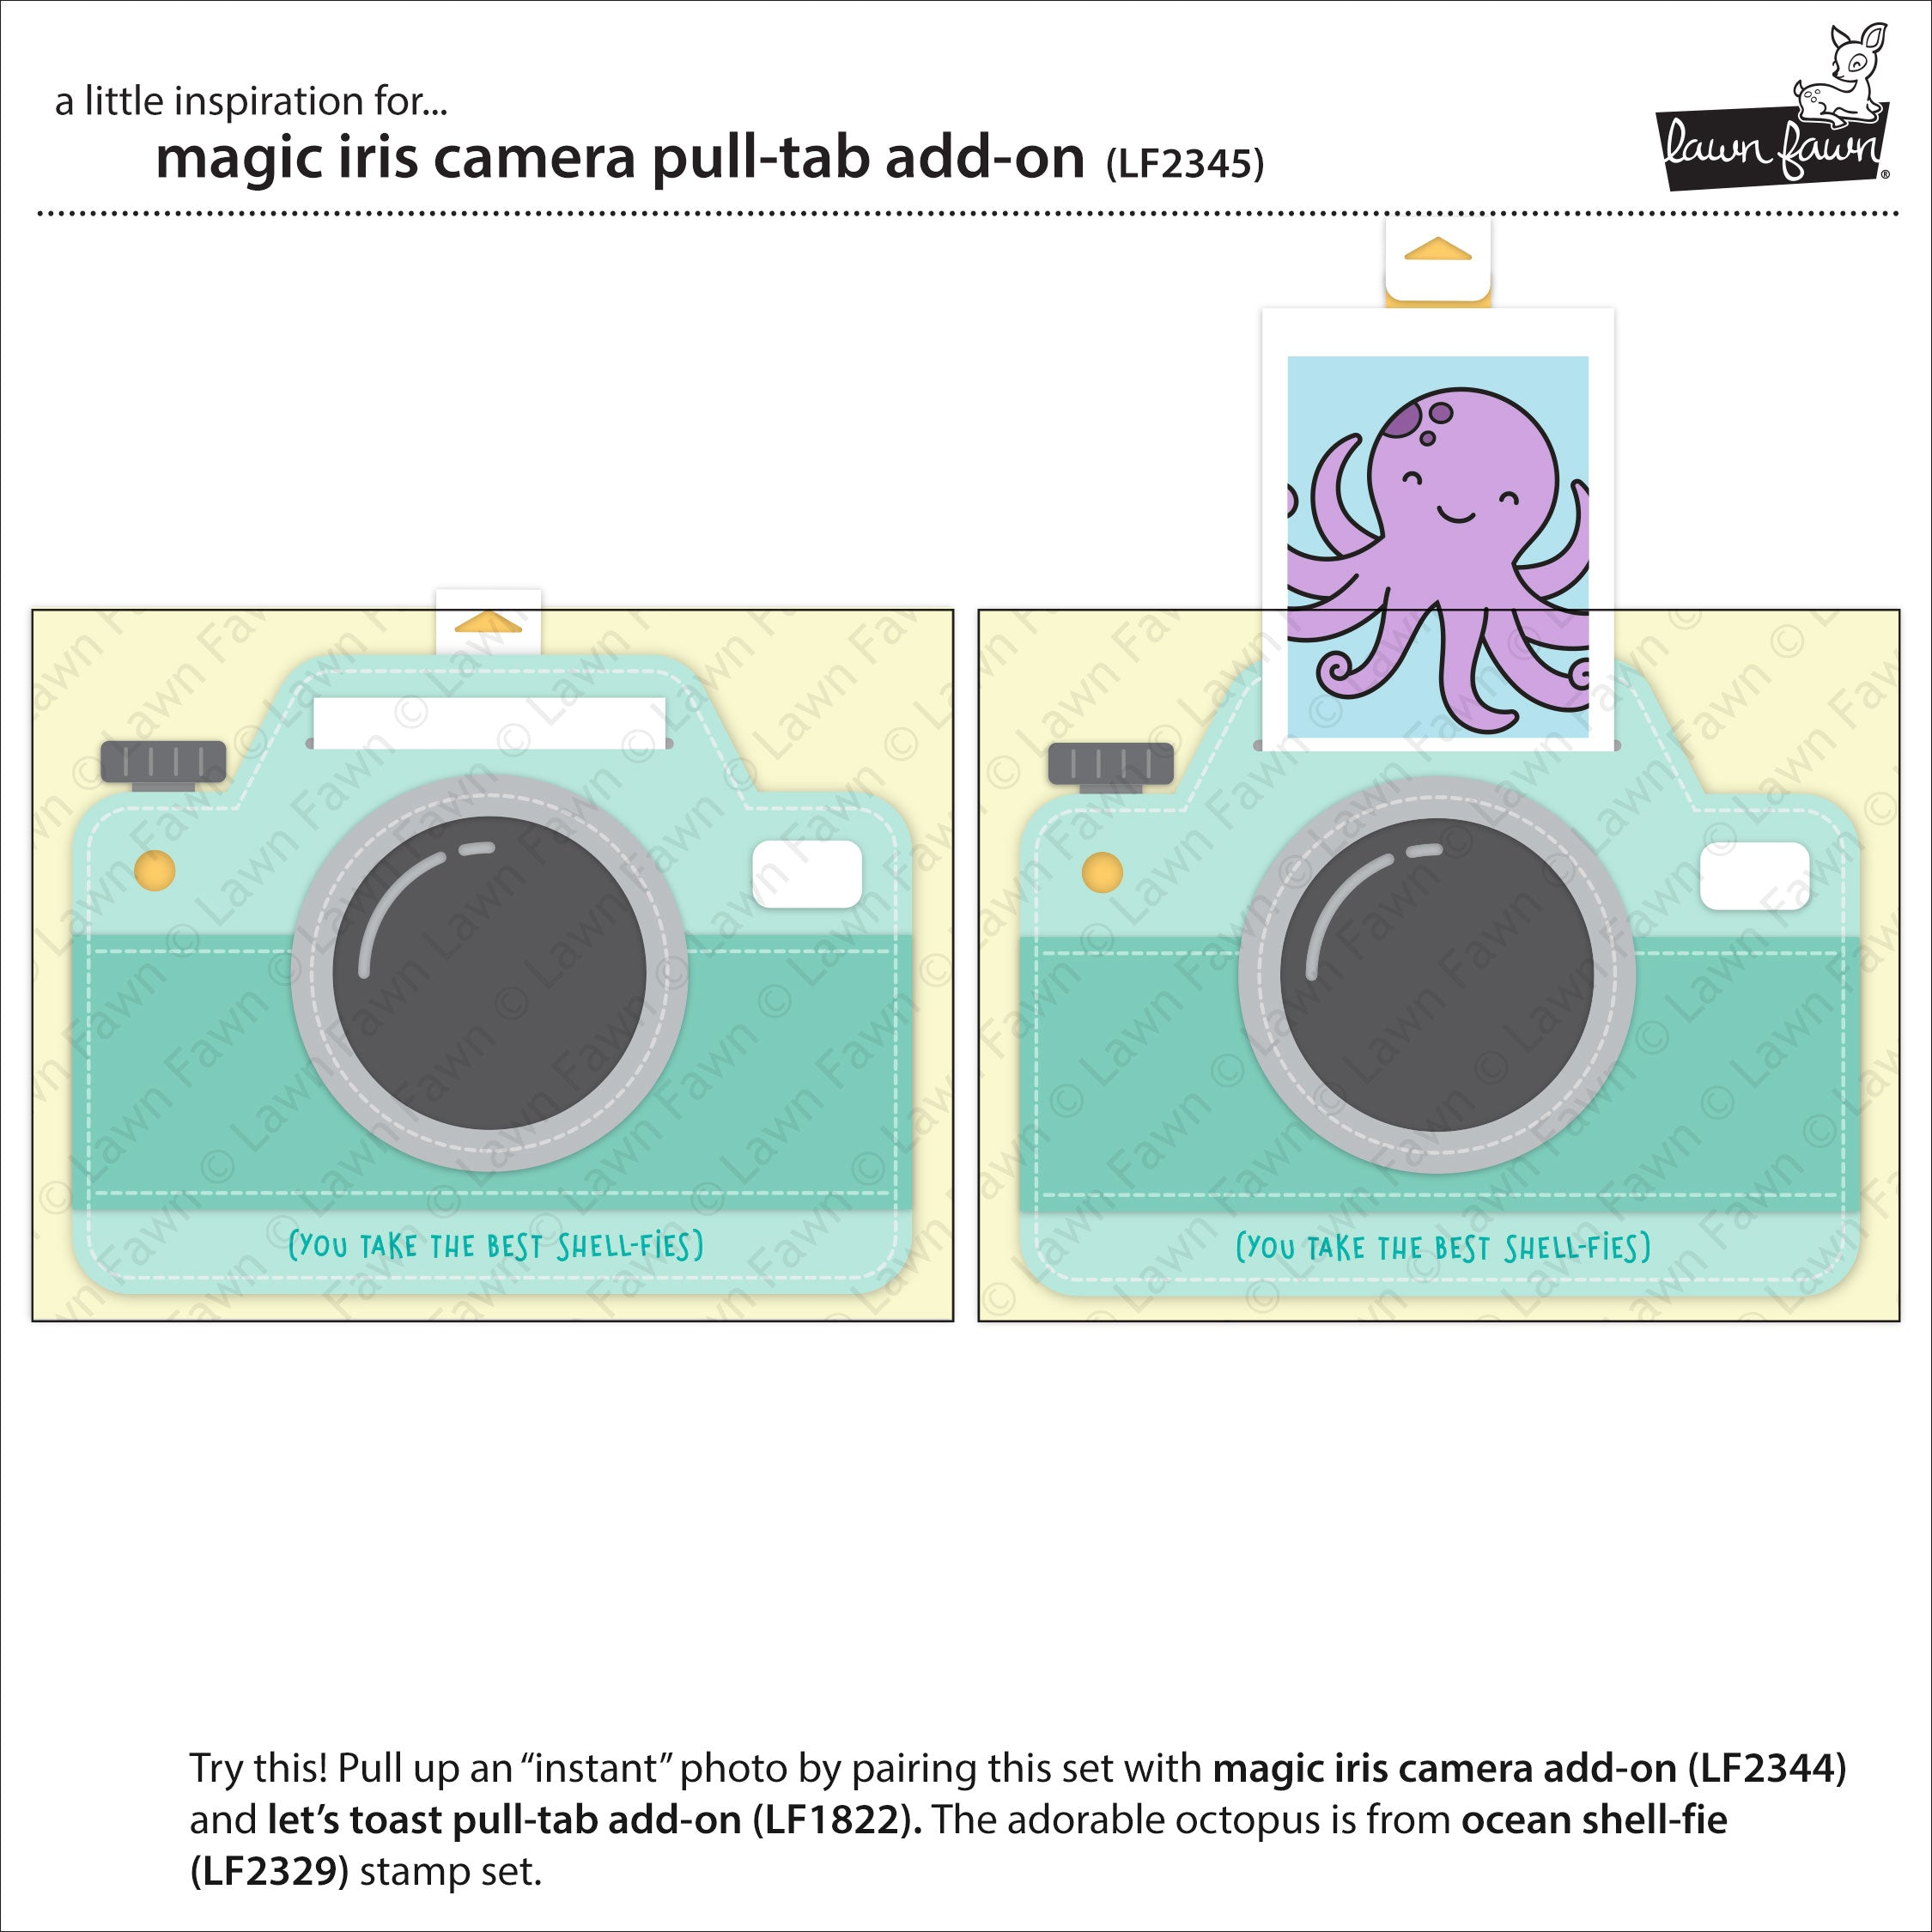 magic iris camera pull-tab add-on